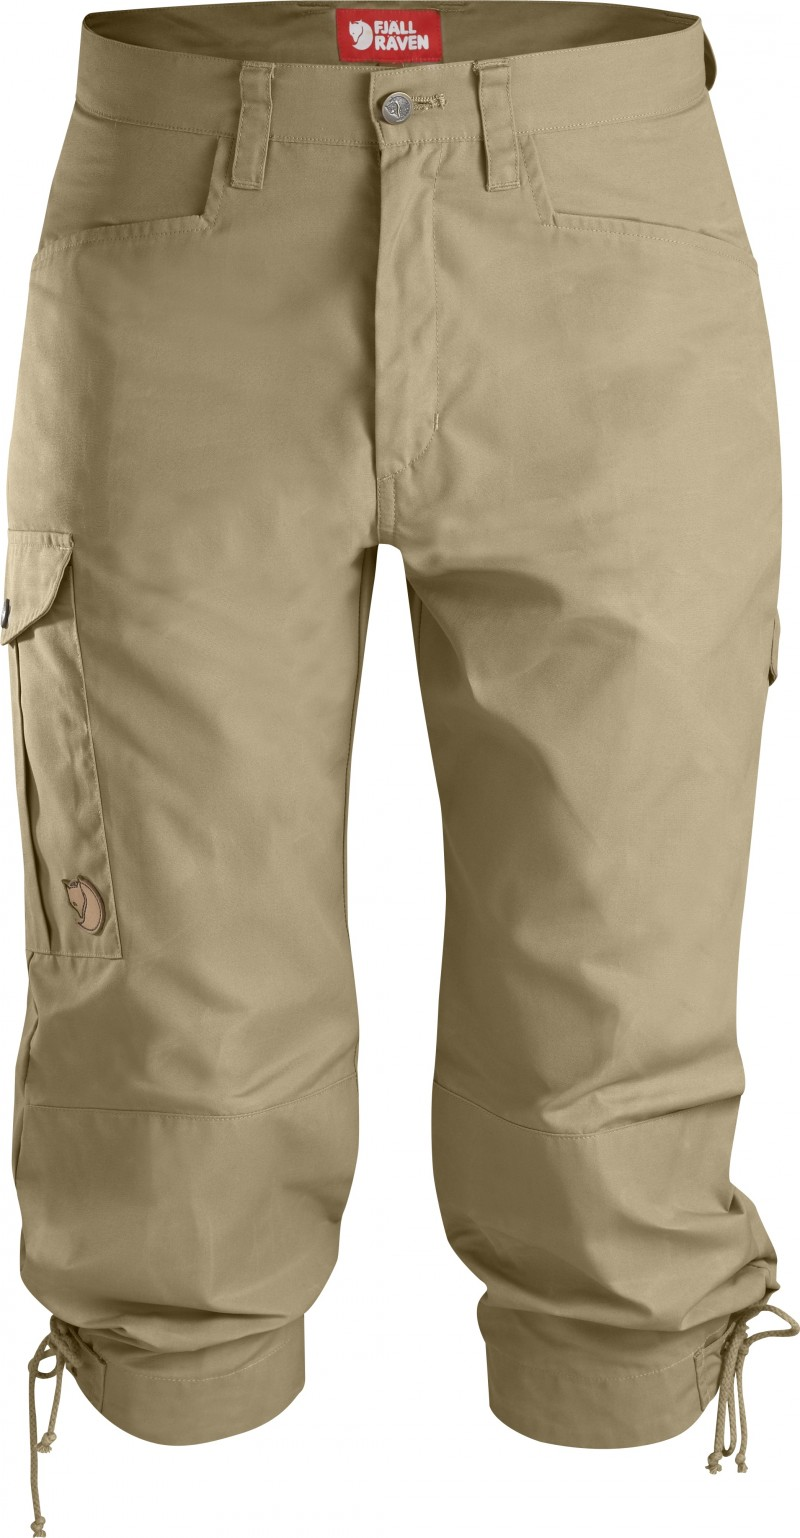 FjallRaven Iceland Knickers W. Sand-30